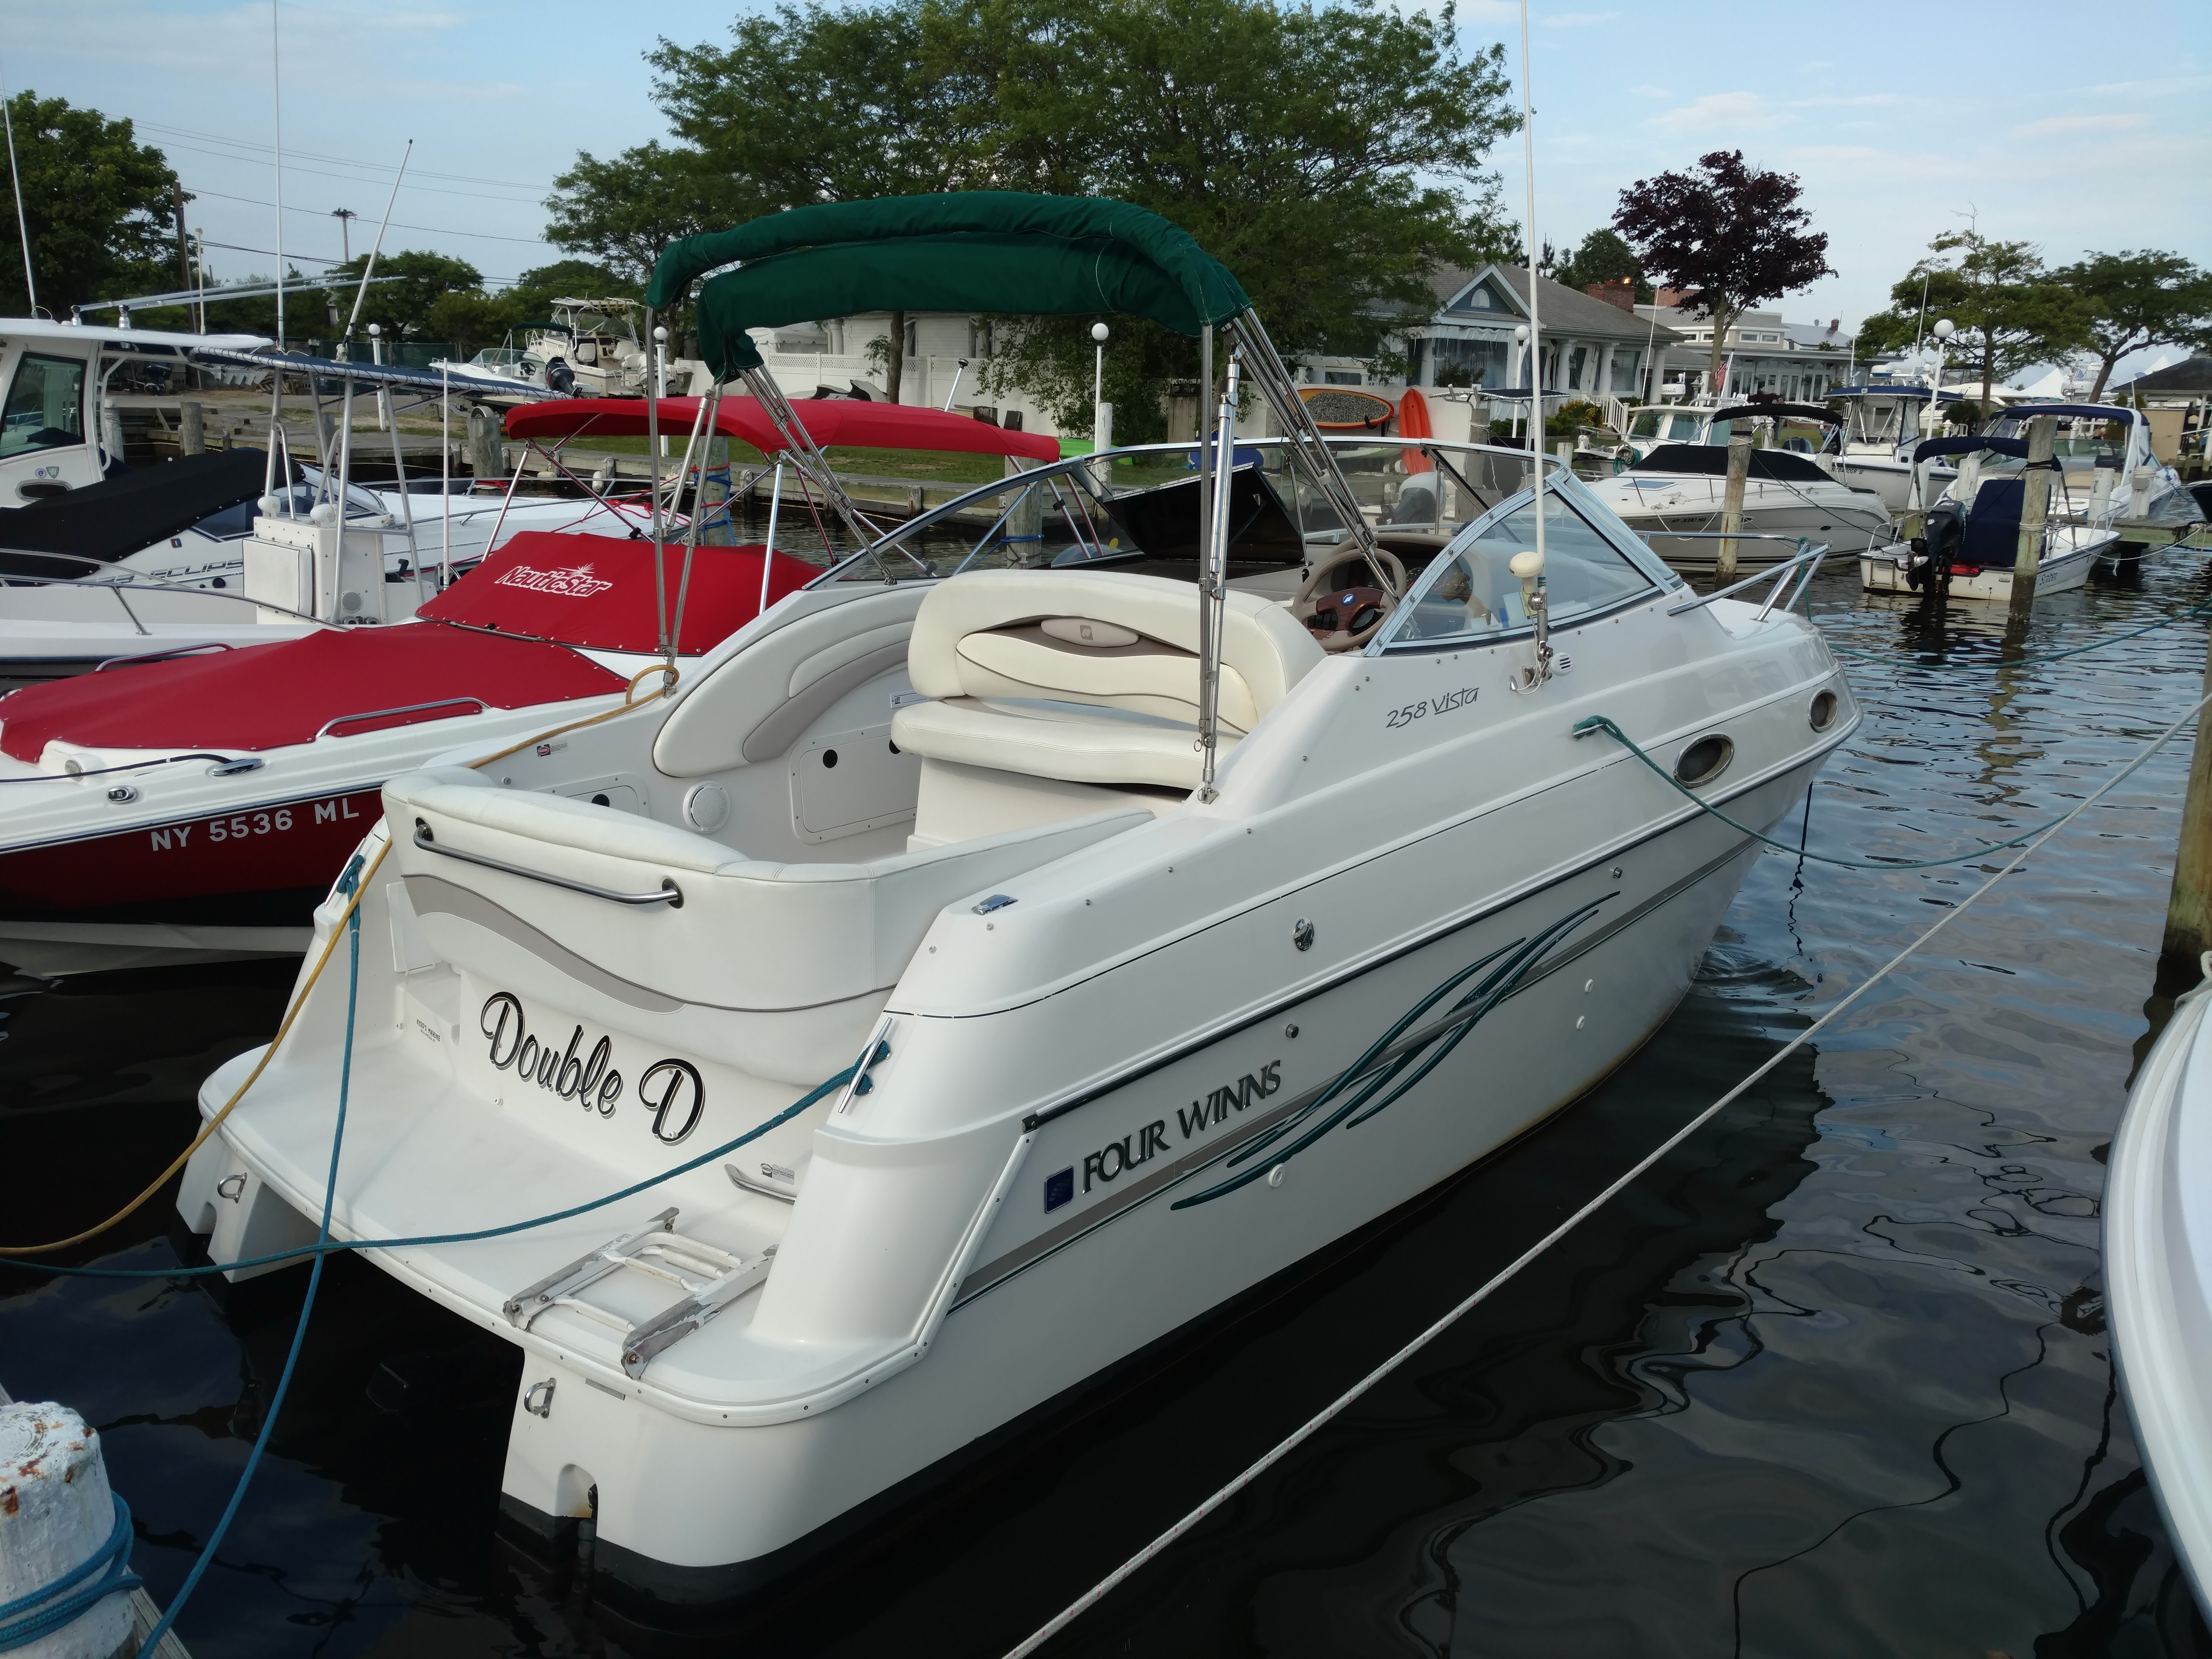 Four Winns 258 Vista Cruiser